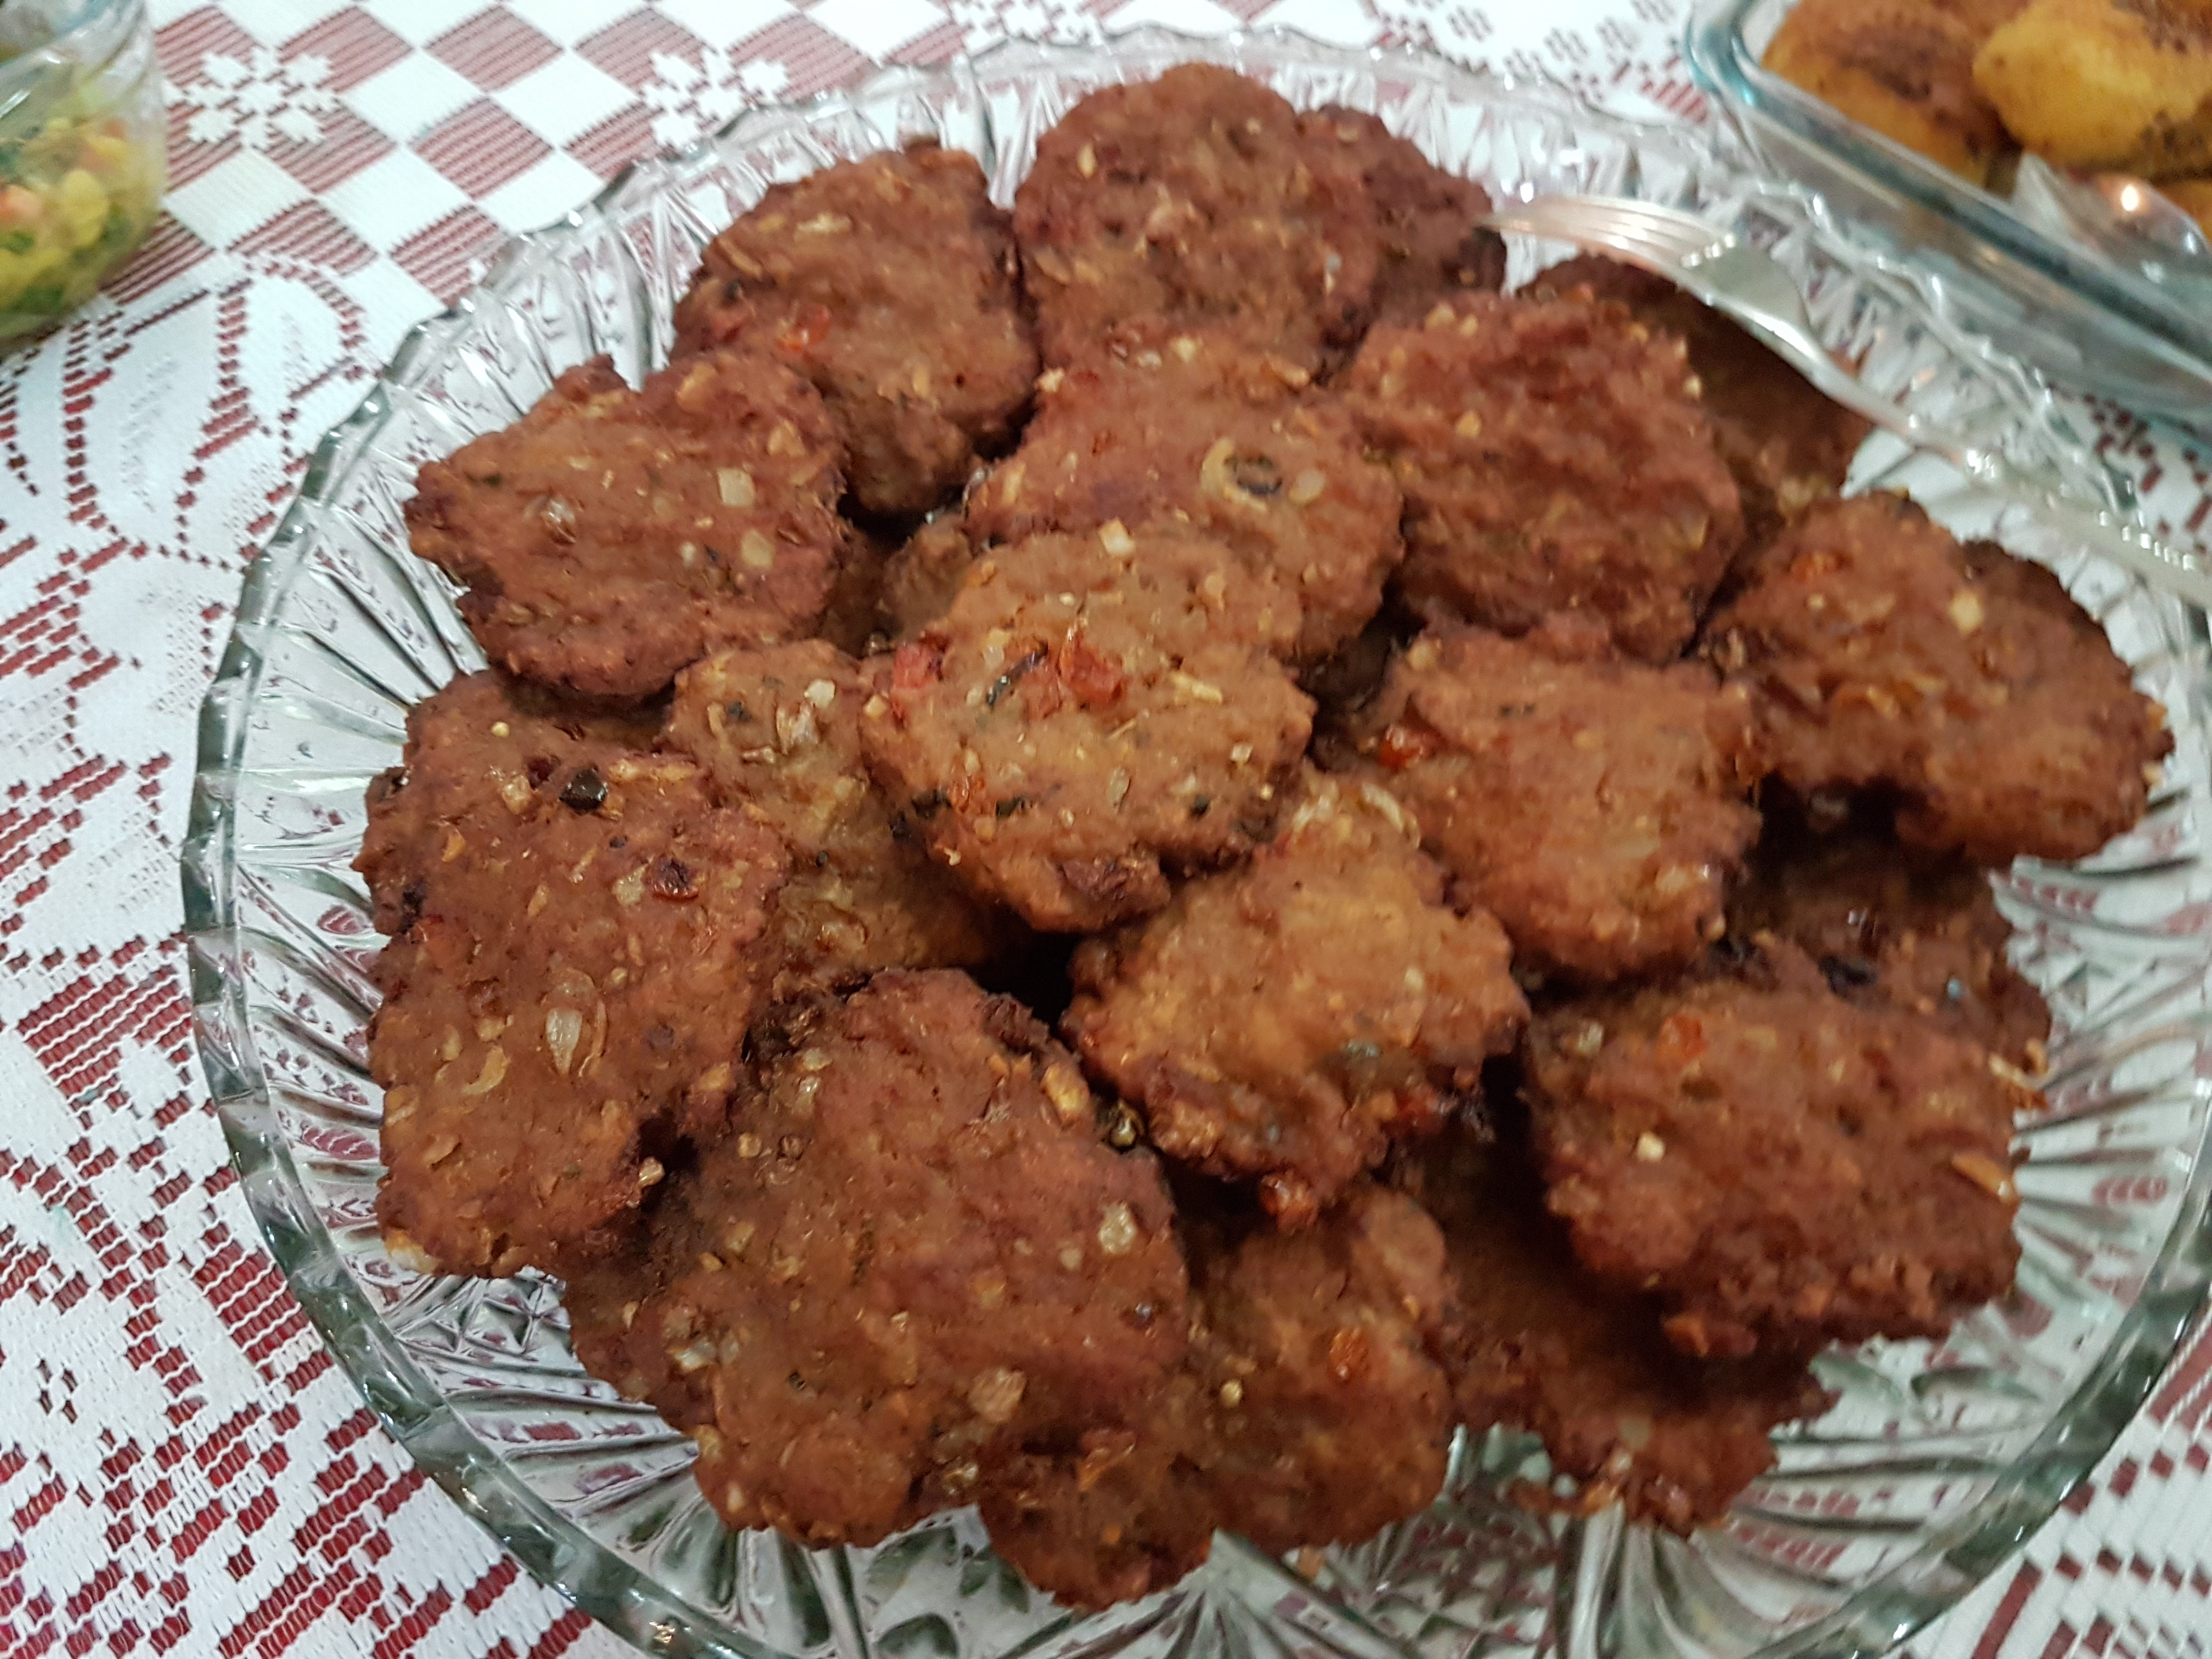 Peyaju, a must-have item for iftar